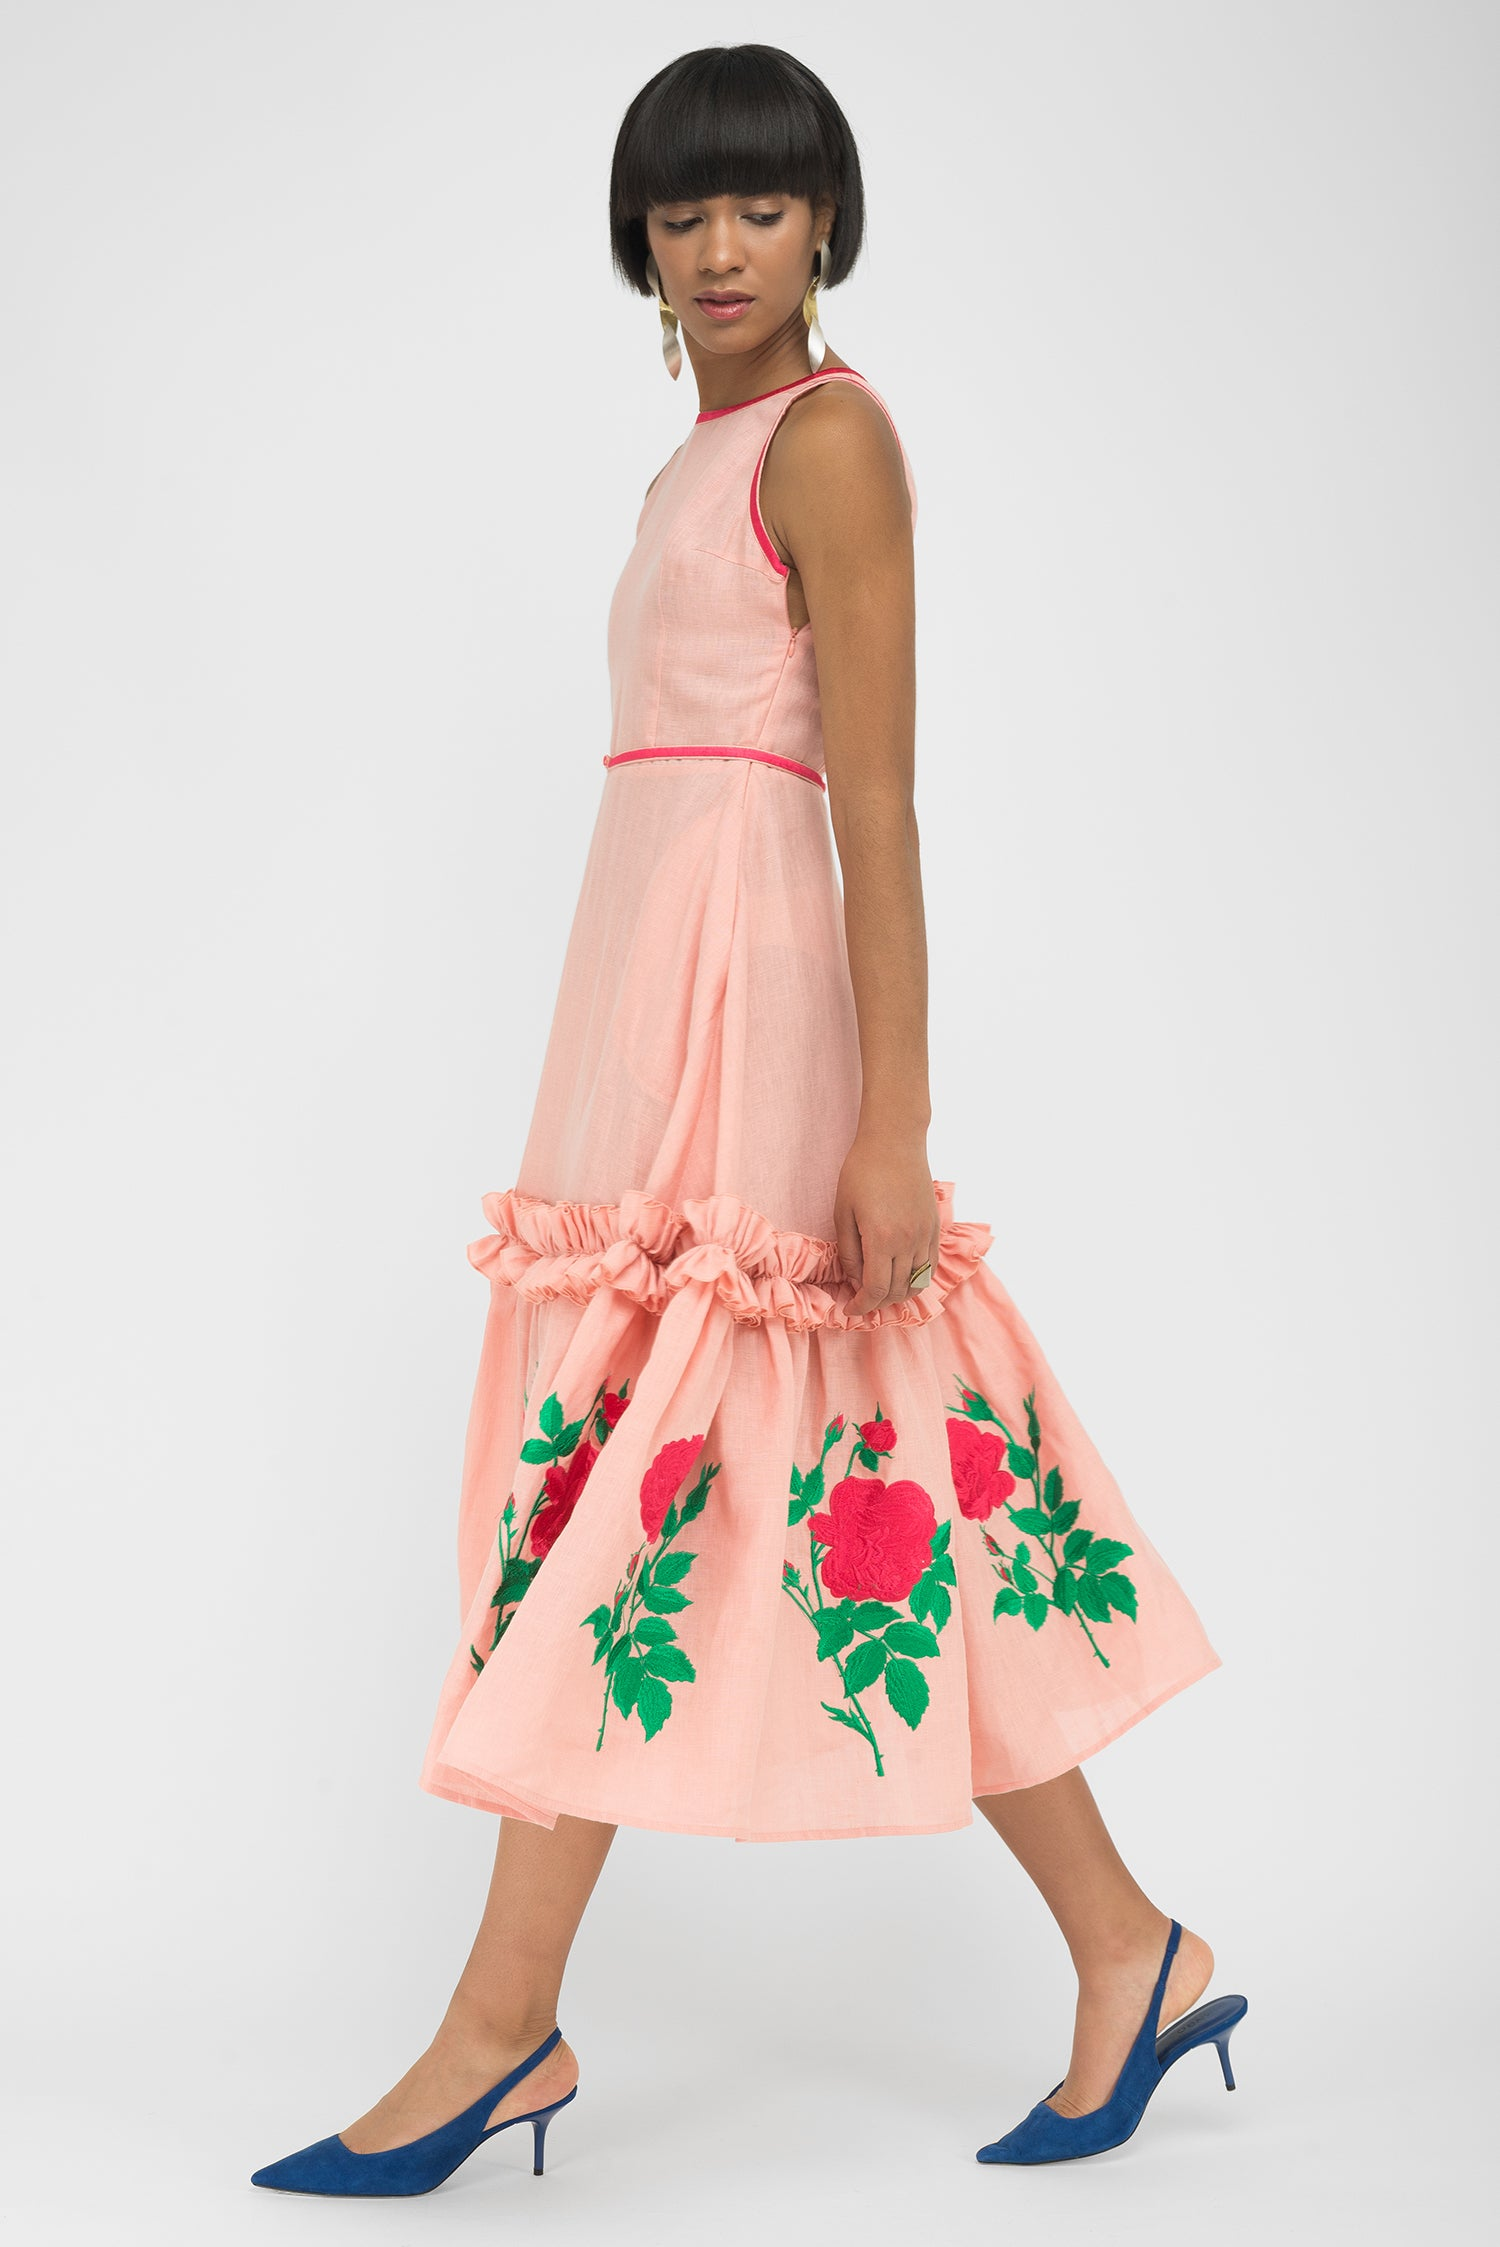 FANM MON DIDIM Peach Linen Red Floral Midi Dress